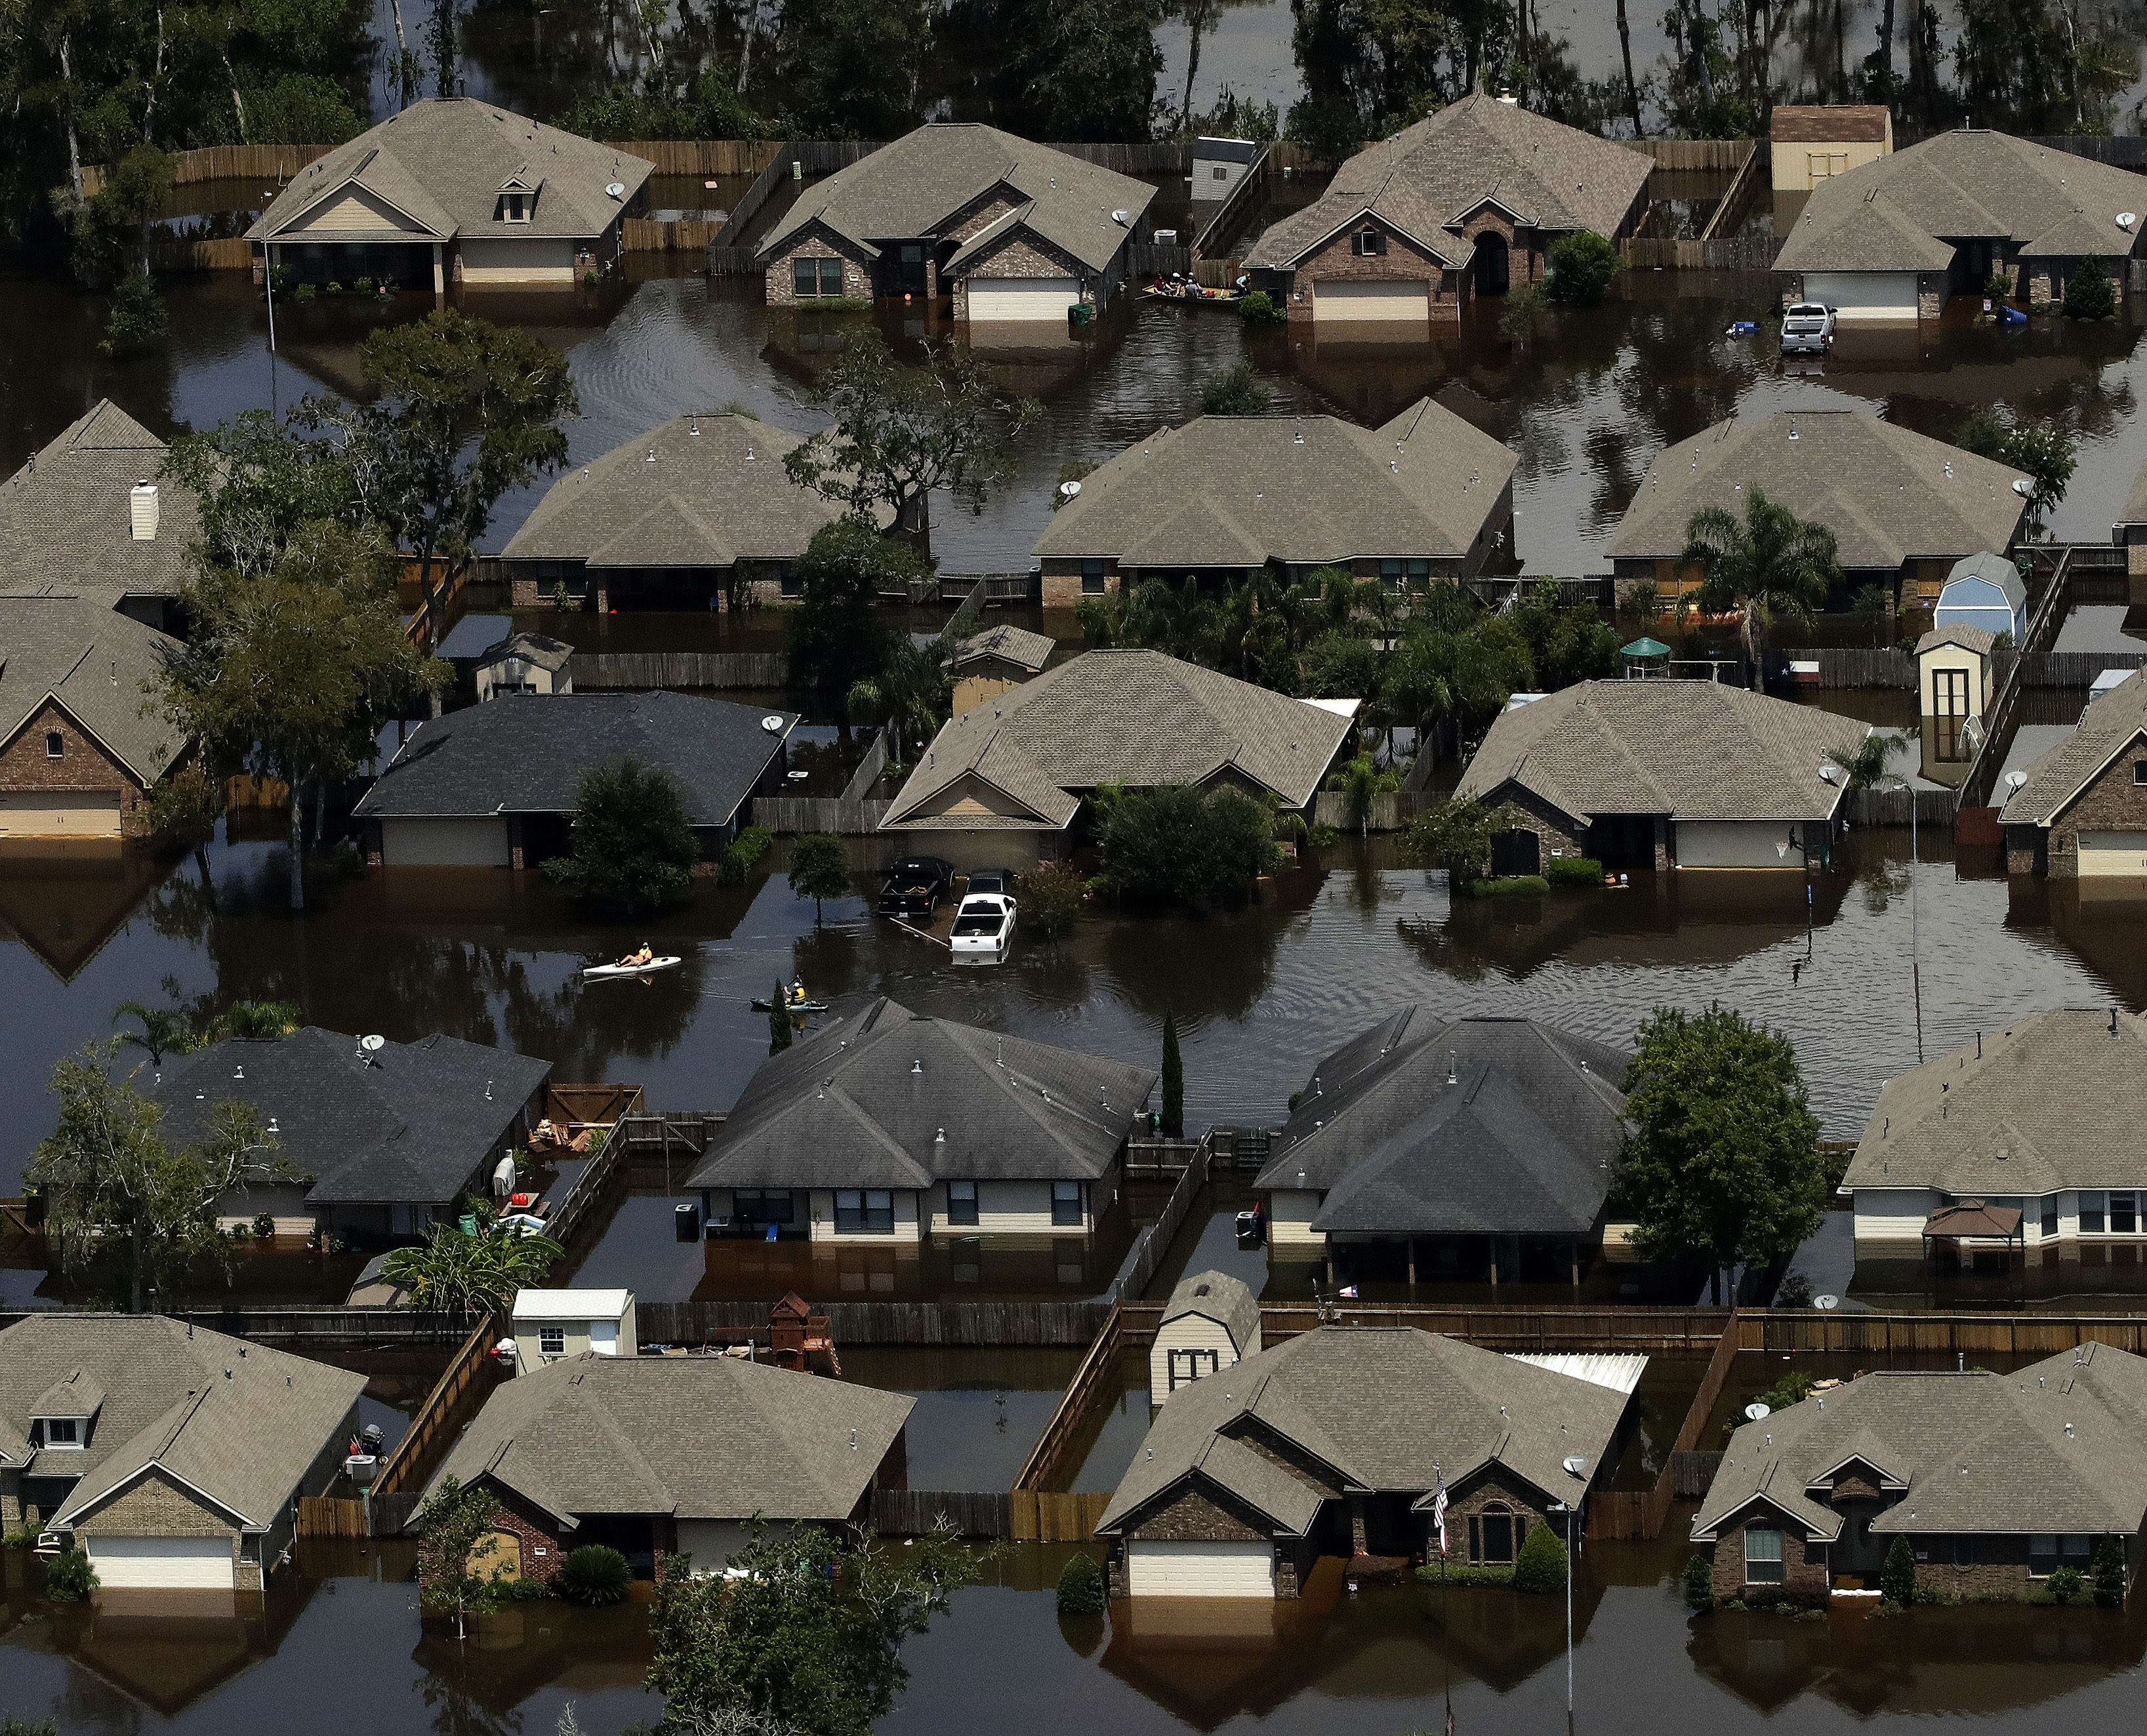 Homes are surrounded by water from the flooded Brazos River in the aftermath of Hurricane Harvey Friday, Sept. 1, 2017, in Freeport, Texas.